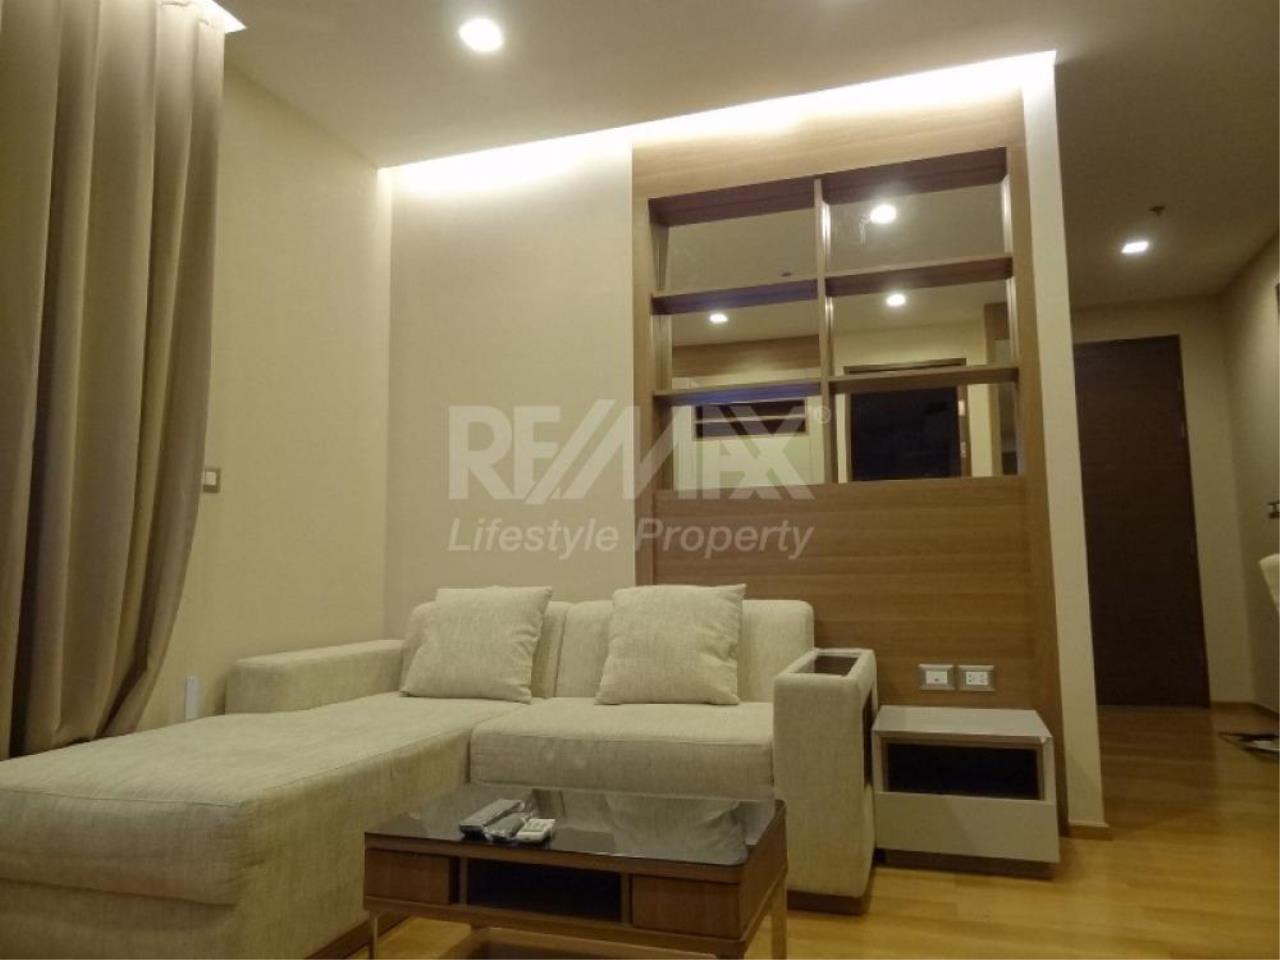 RE/MAX LifeStyle Property Agency's The Address Asoke 1